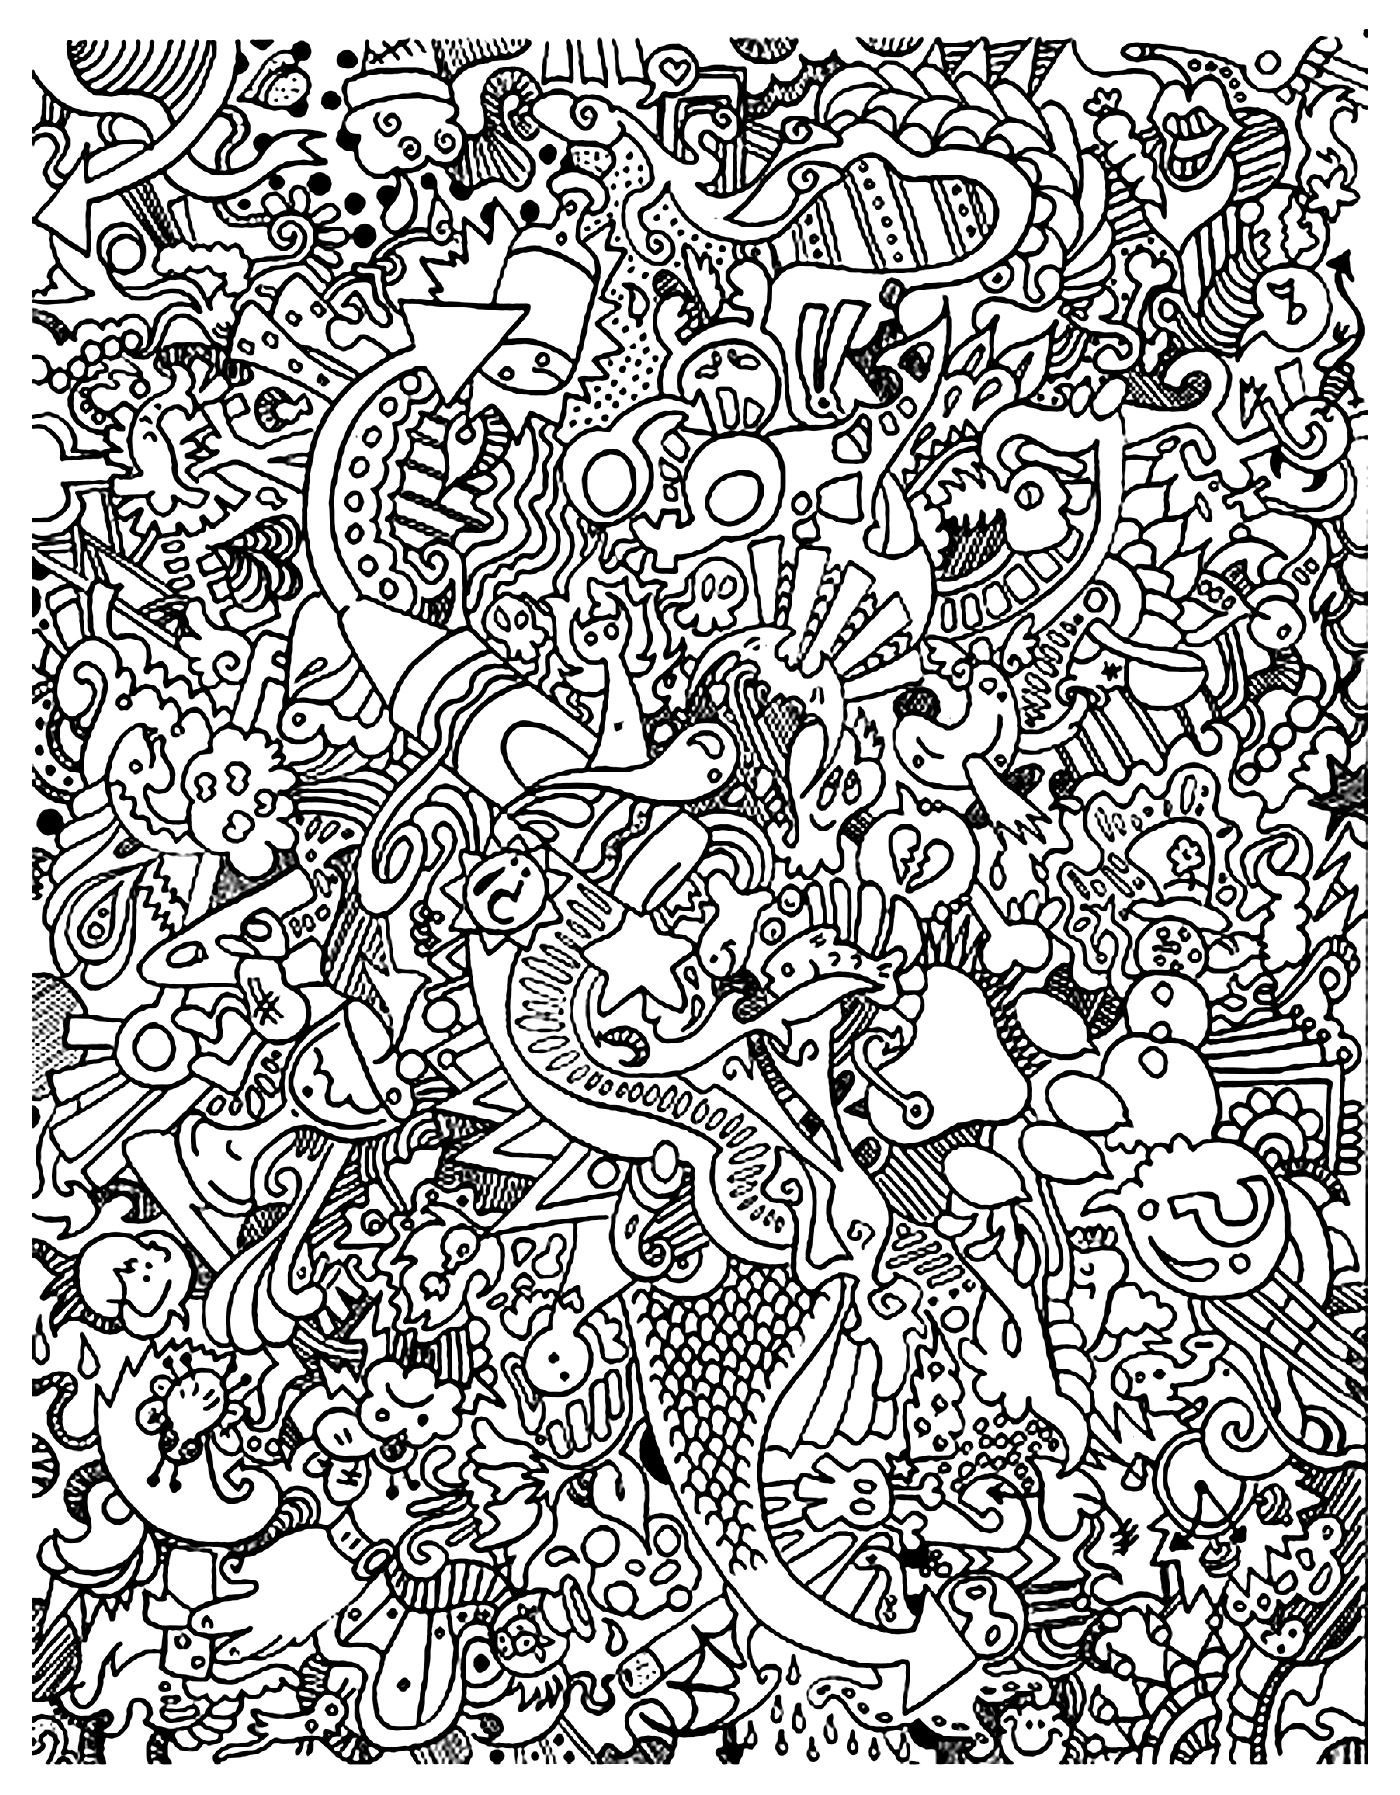 Free Coloring Page Coloring-Doodle-Art-Doodling-18. Very Complex - Free Printable Doodle Art Coloring Pages